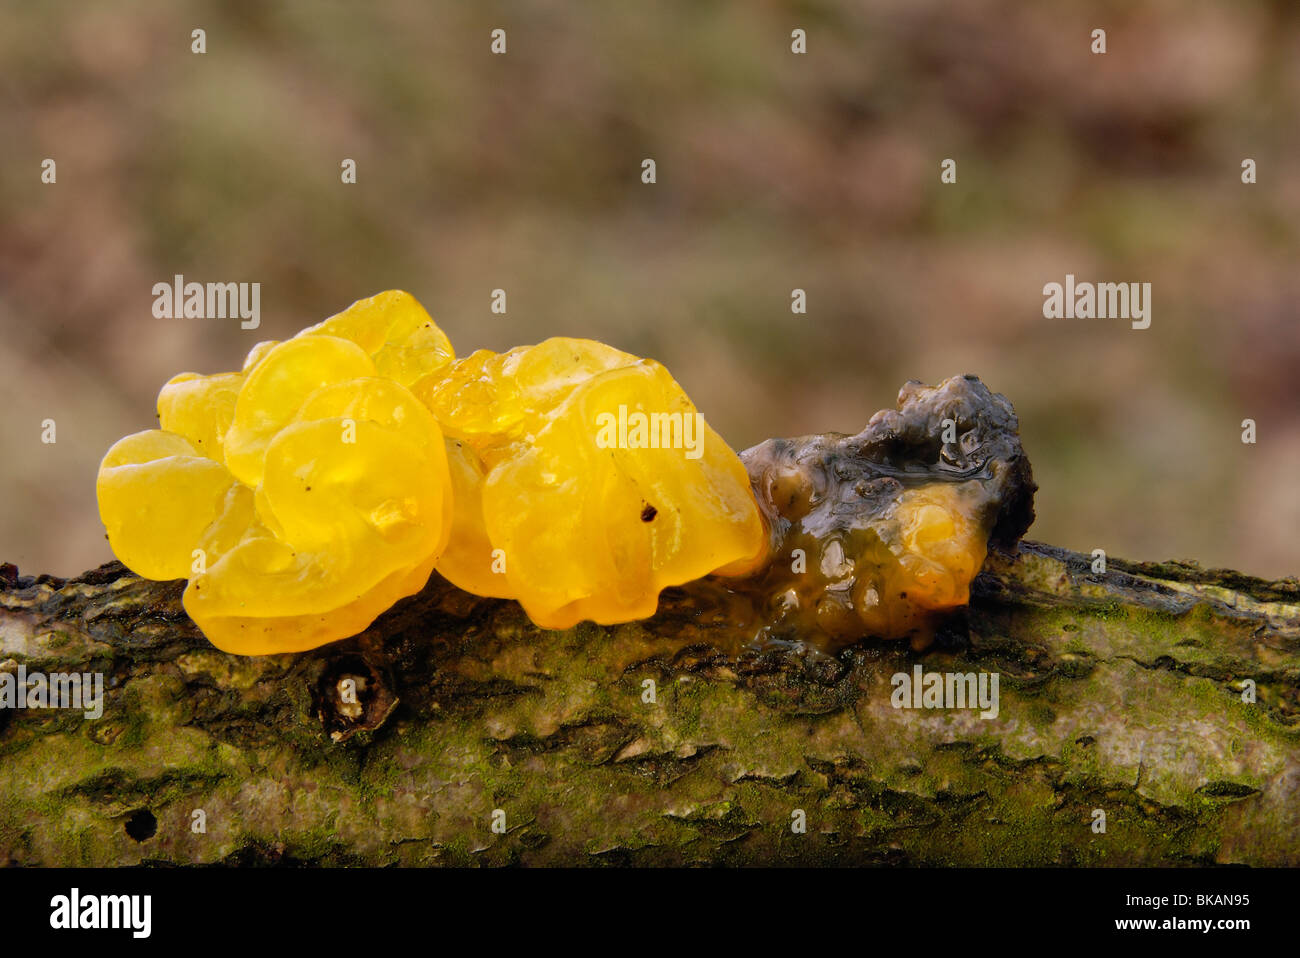 Close-up Yellow brain fungus - golden jelly fungus - Witch's Butter (Tremella mesenterica) on a brown branch - Stock Image